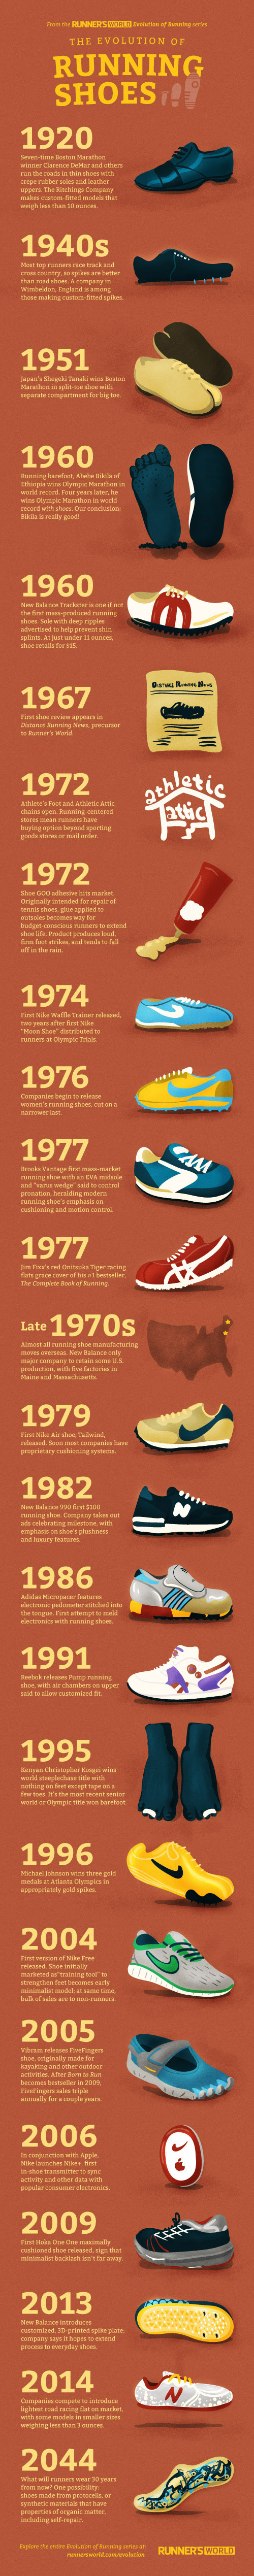 Infographic: The Evolution of Running Shoes #infographic